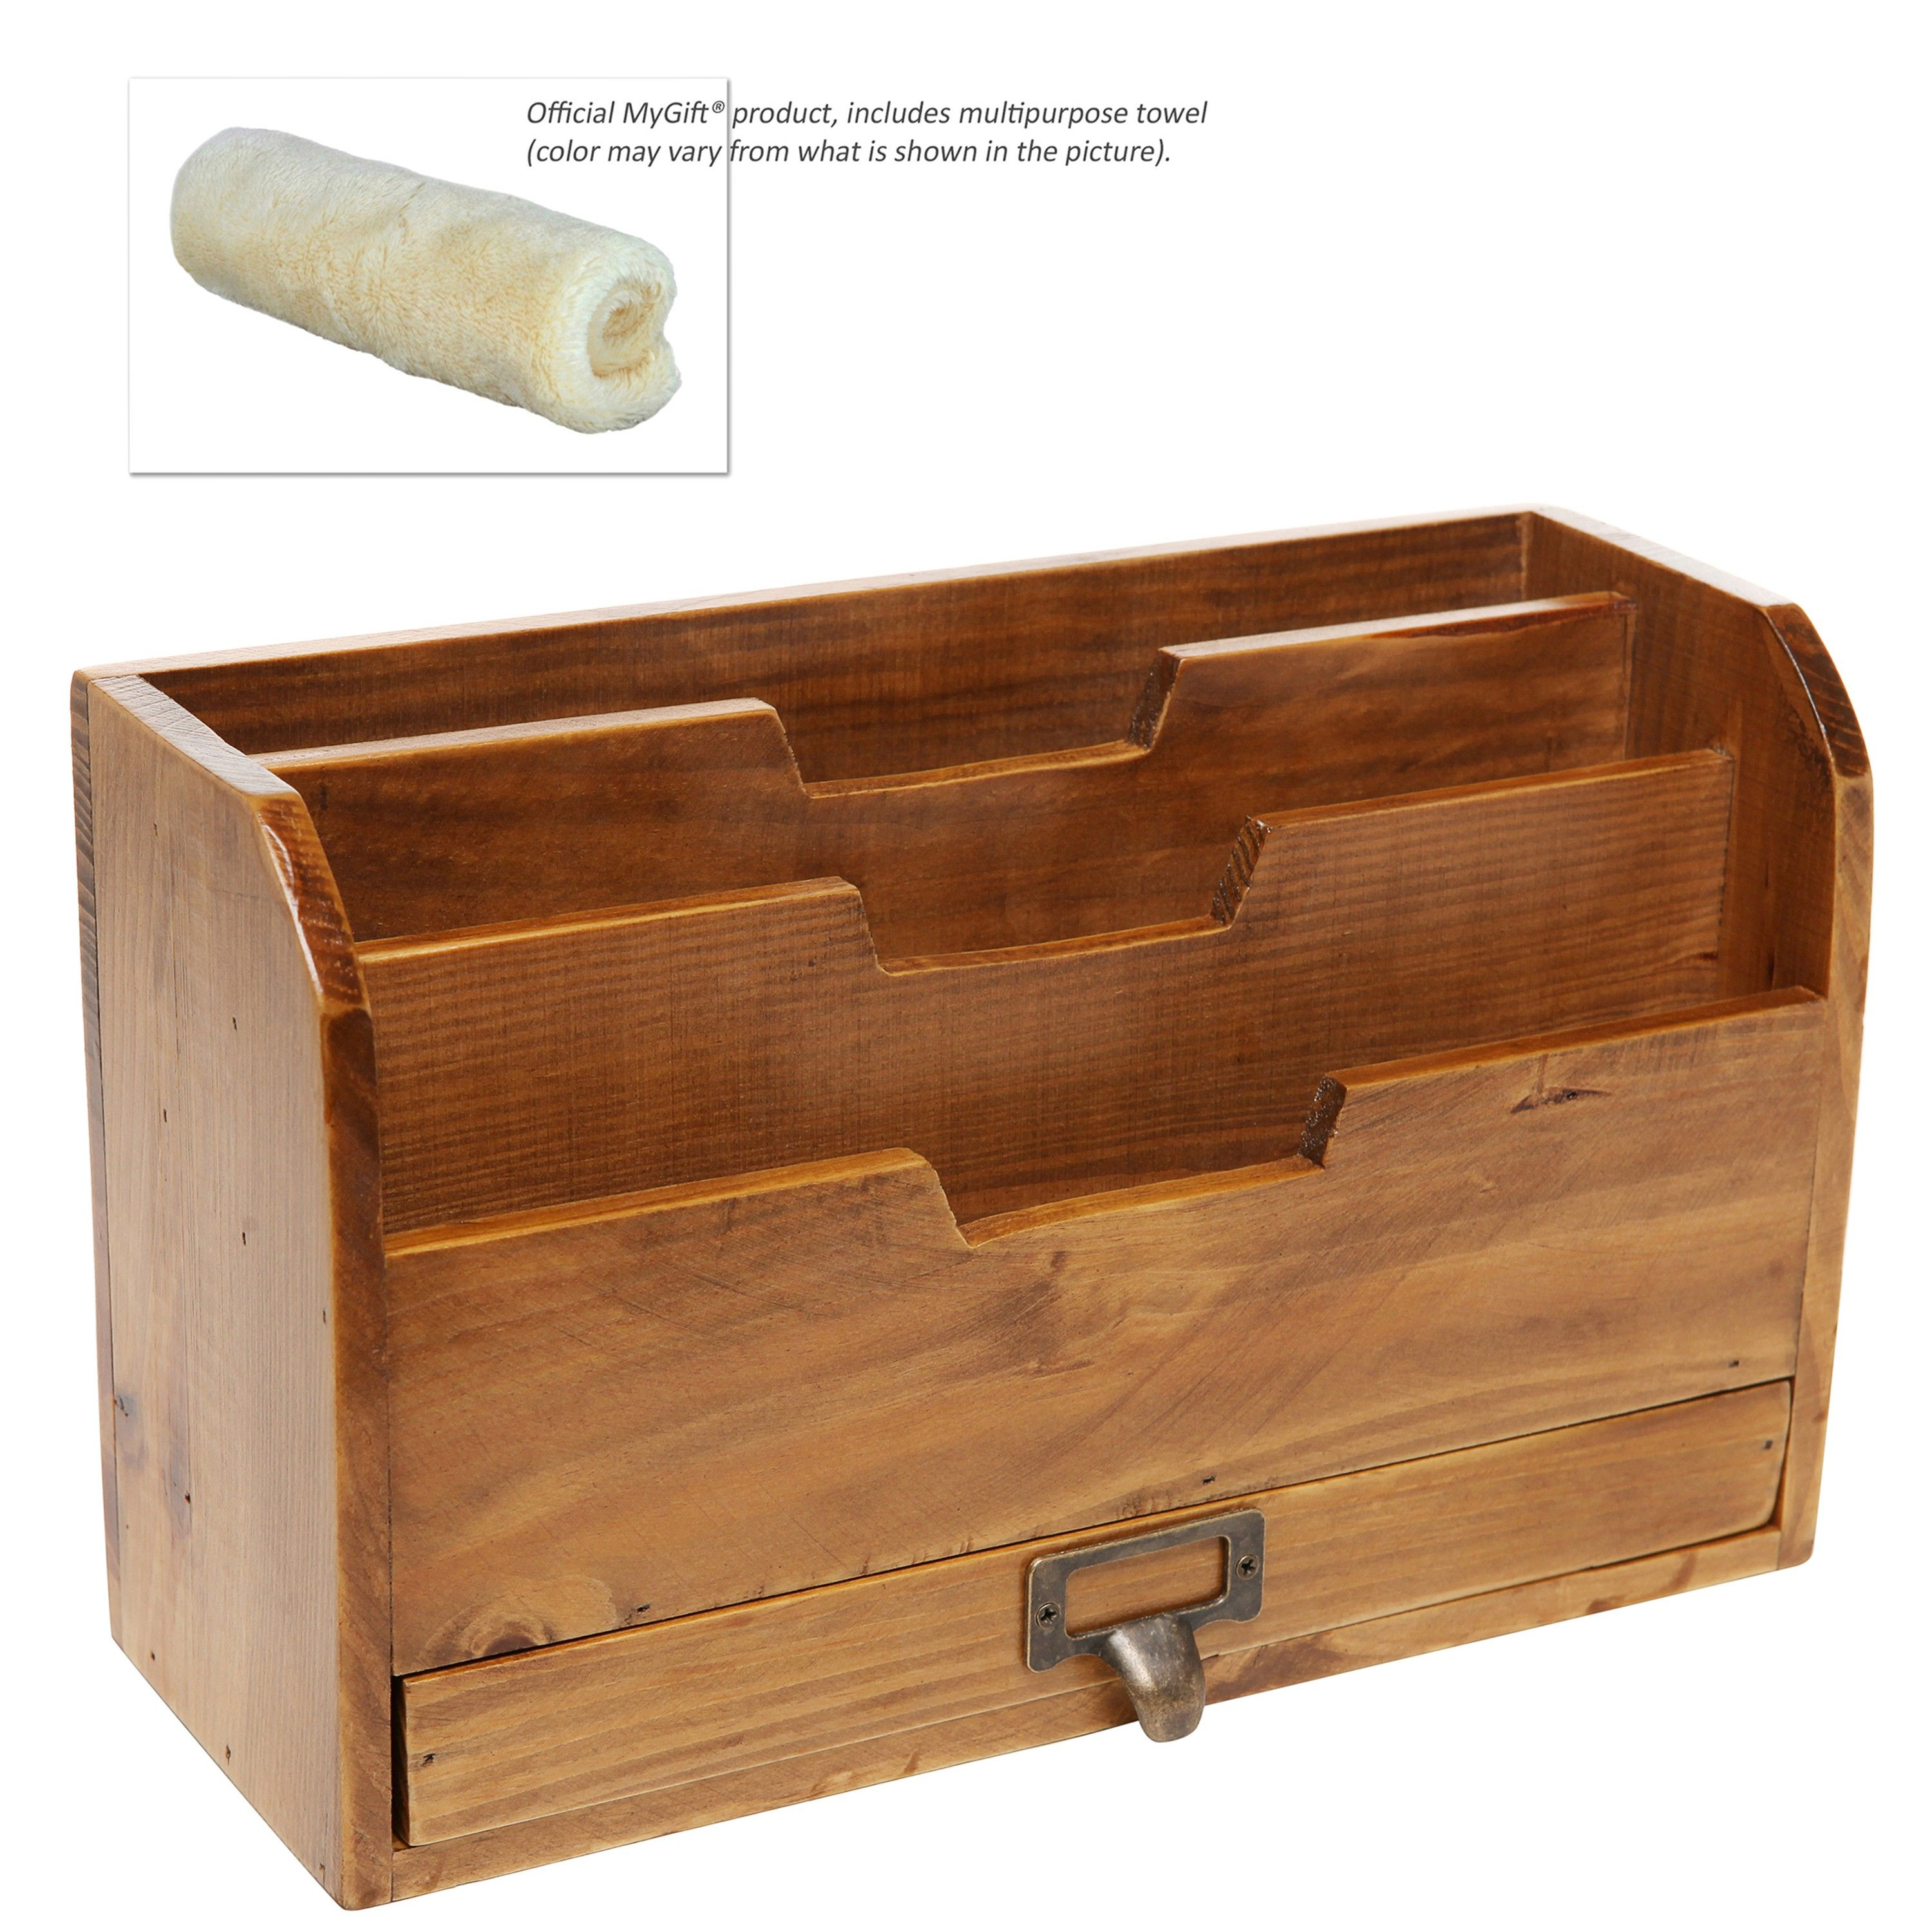 3 Tier Country Rustic Vintage Office Desk File Organizer